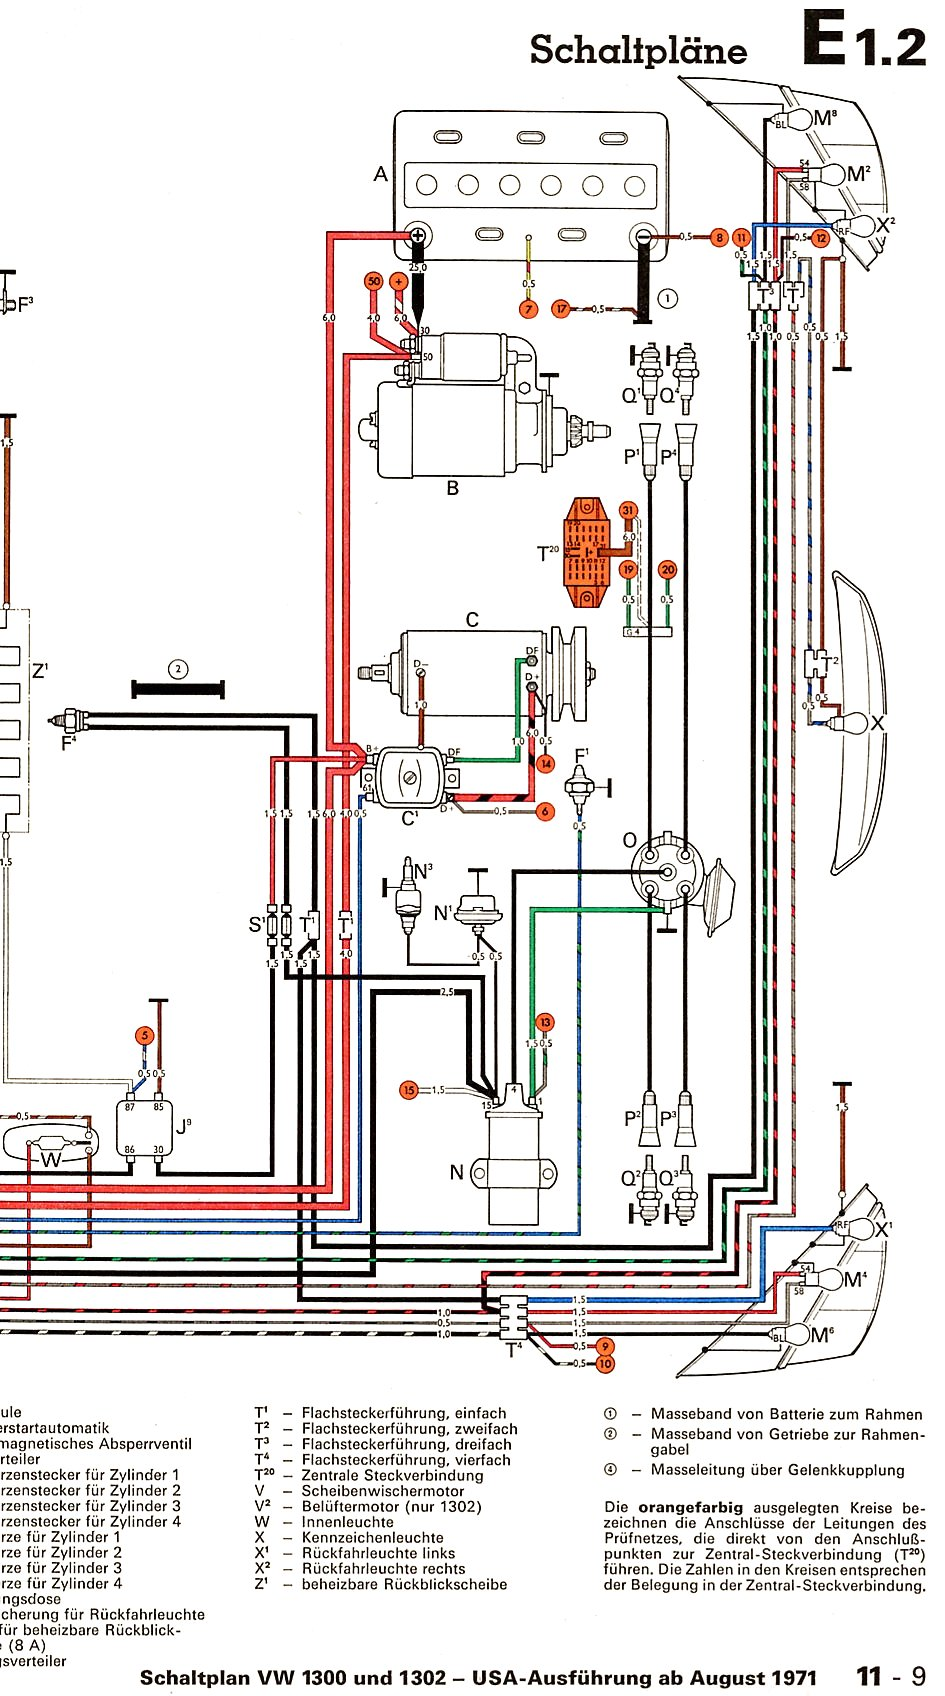 1300_and_1302_USA_from_August_1971 2 wiring diagram shoptalkforums com 73 vw beetle wiring diagram at bakdesigns.co